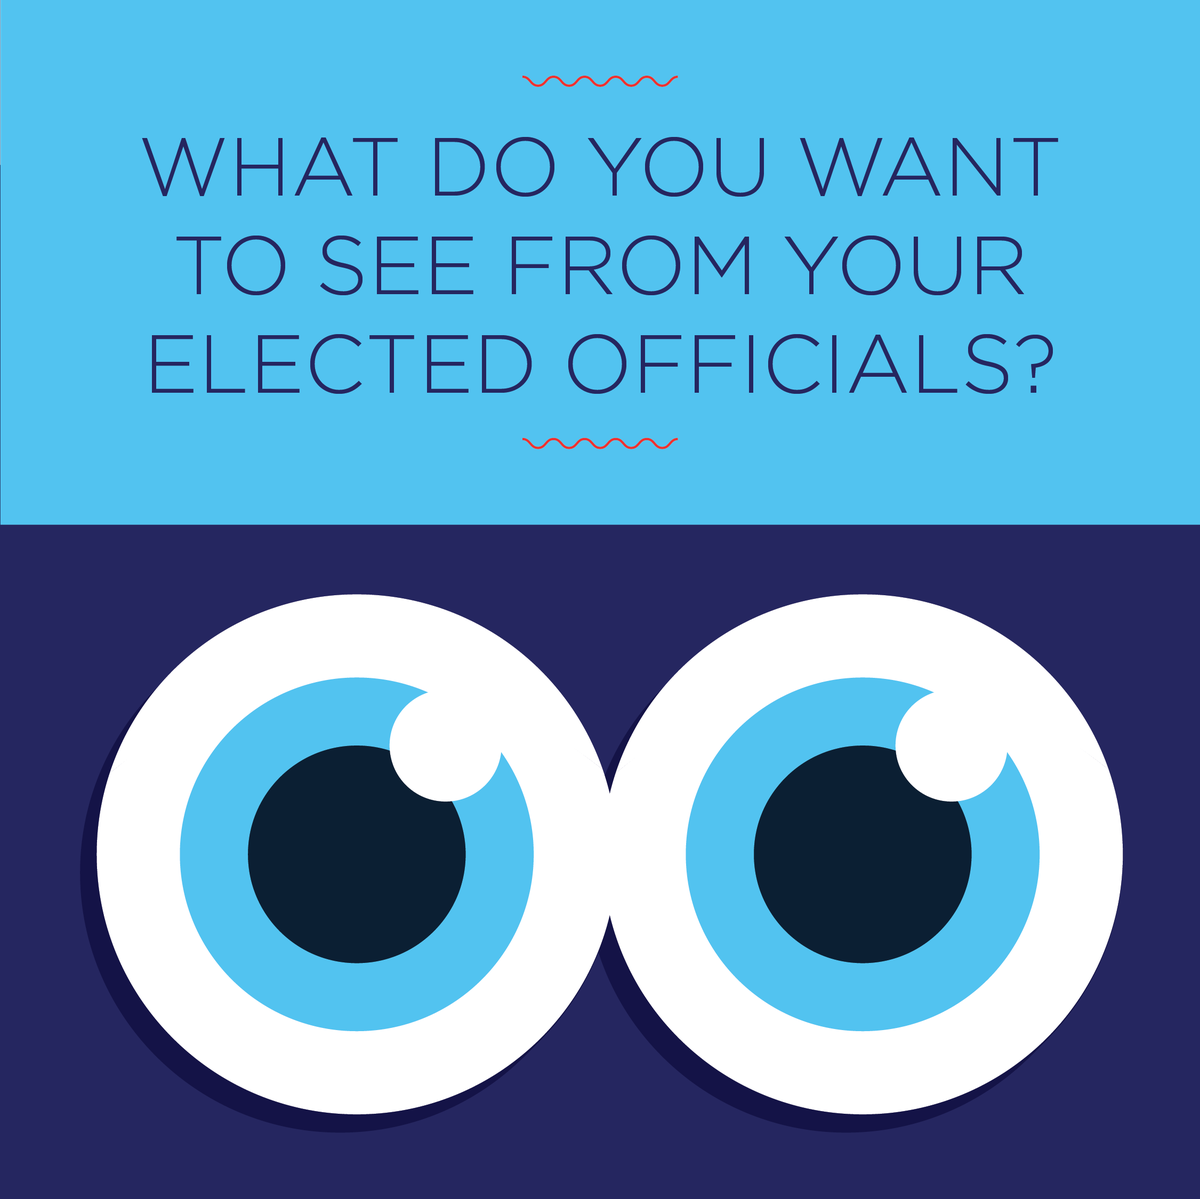 Youth Wave Action #1: What are things you'd like to see from your elected officials?   #NationalVoterRegistrationDay